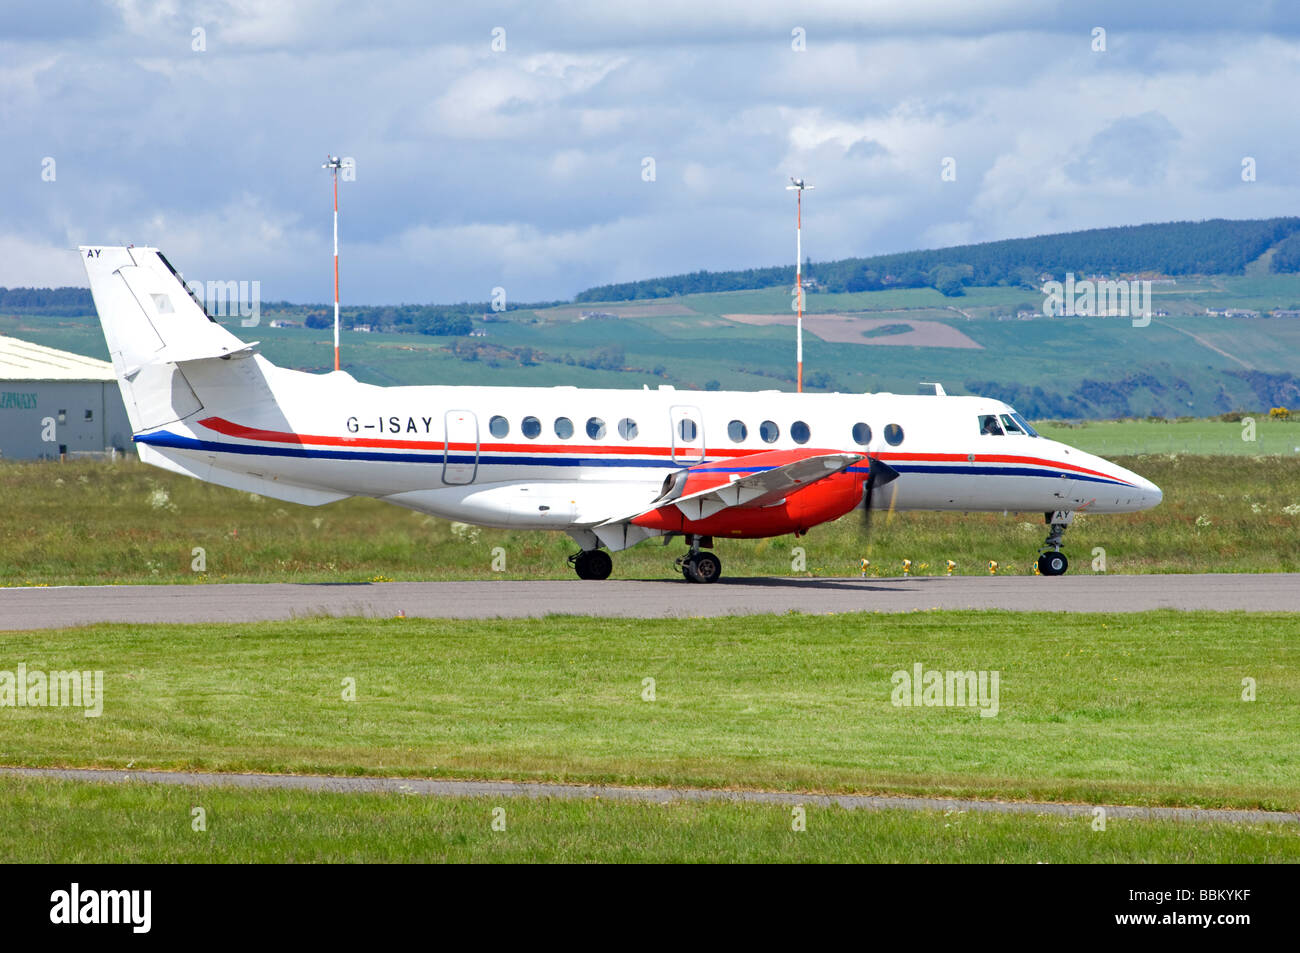 Highland Airways G-ISAY Jetstream 41 aircraft at Inverness   SCO 2507 - Stock Image